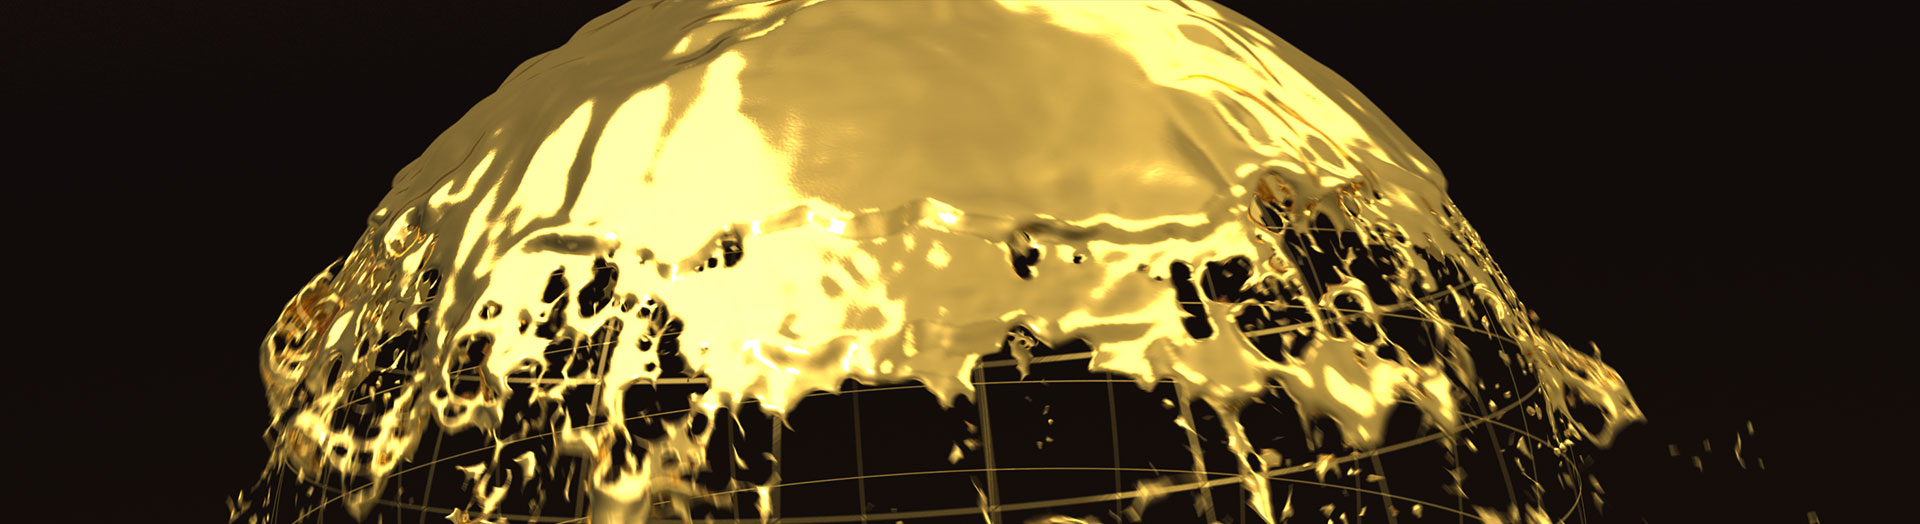 3D Liquid animation of earth being formed by Gold